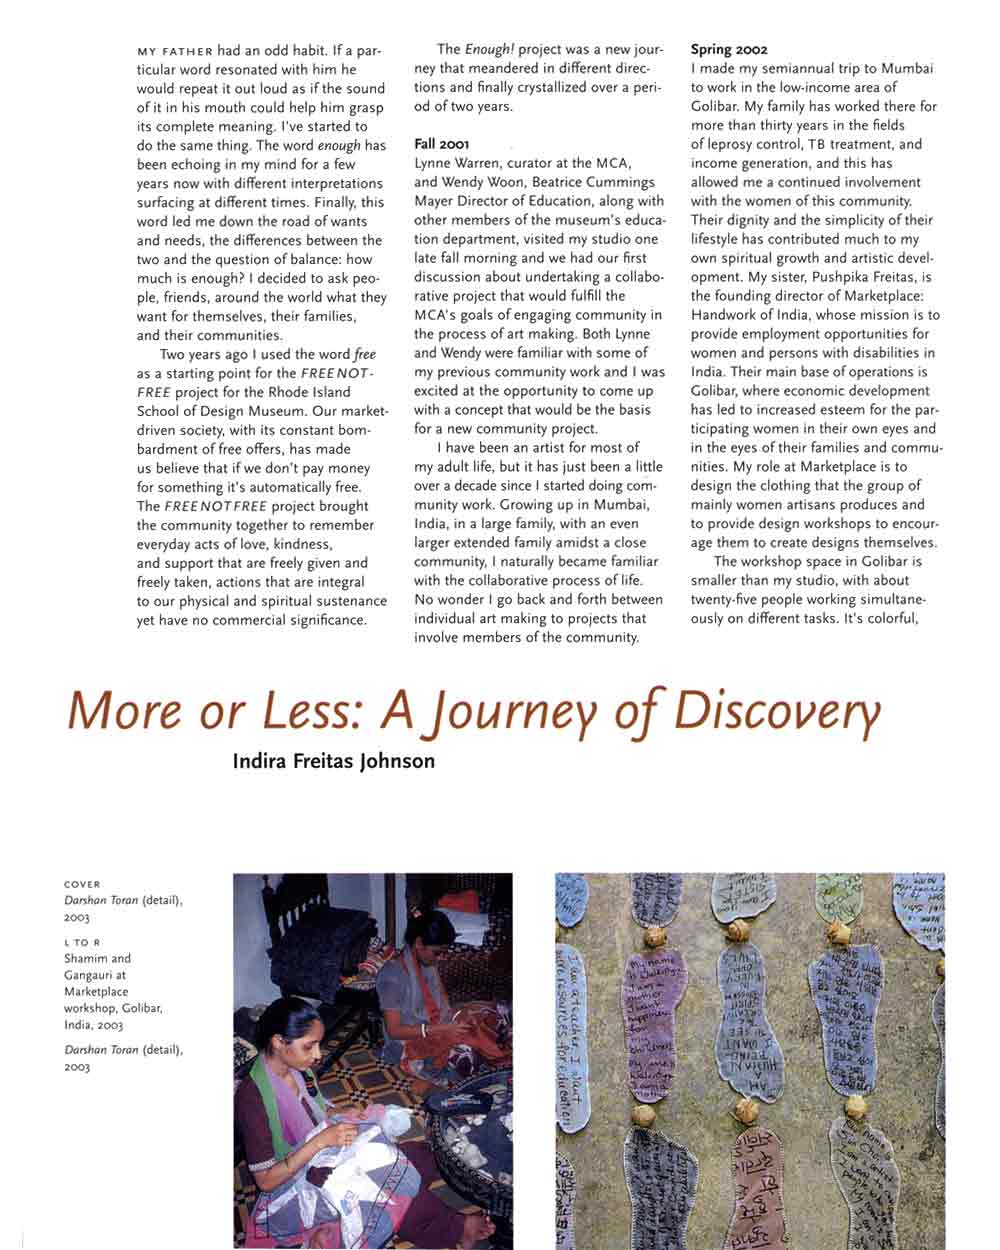 More or Less: A Journey of Discovery, essay, pg 1